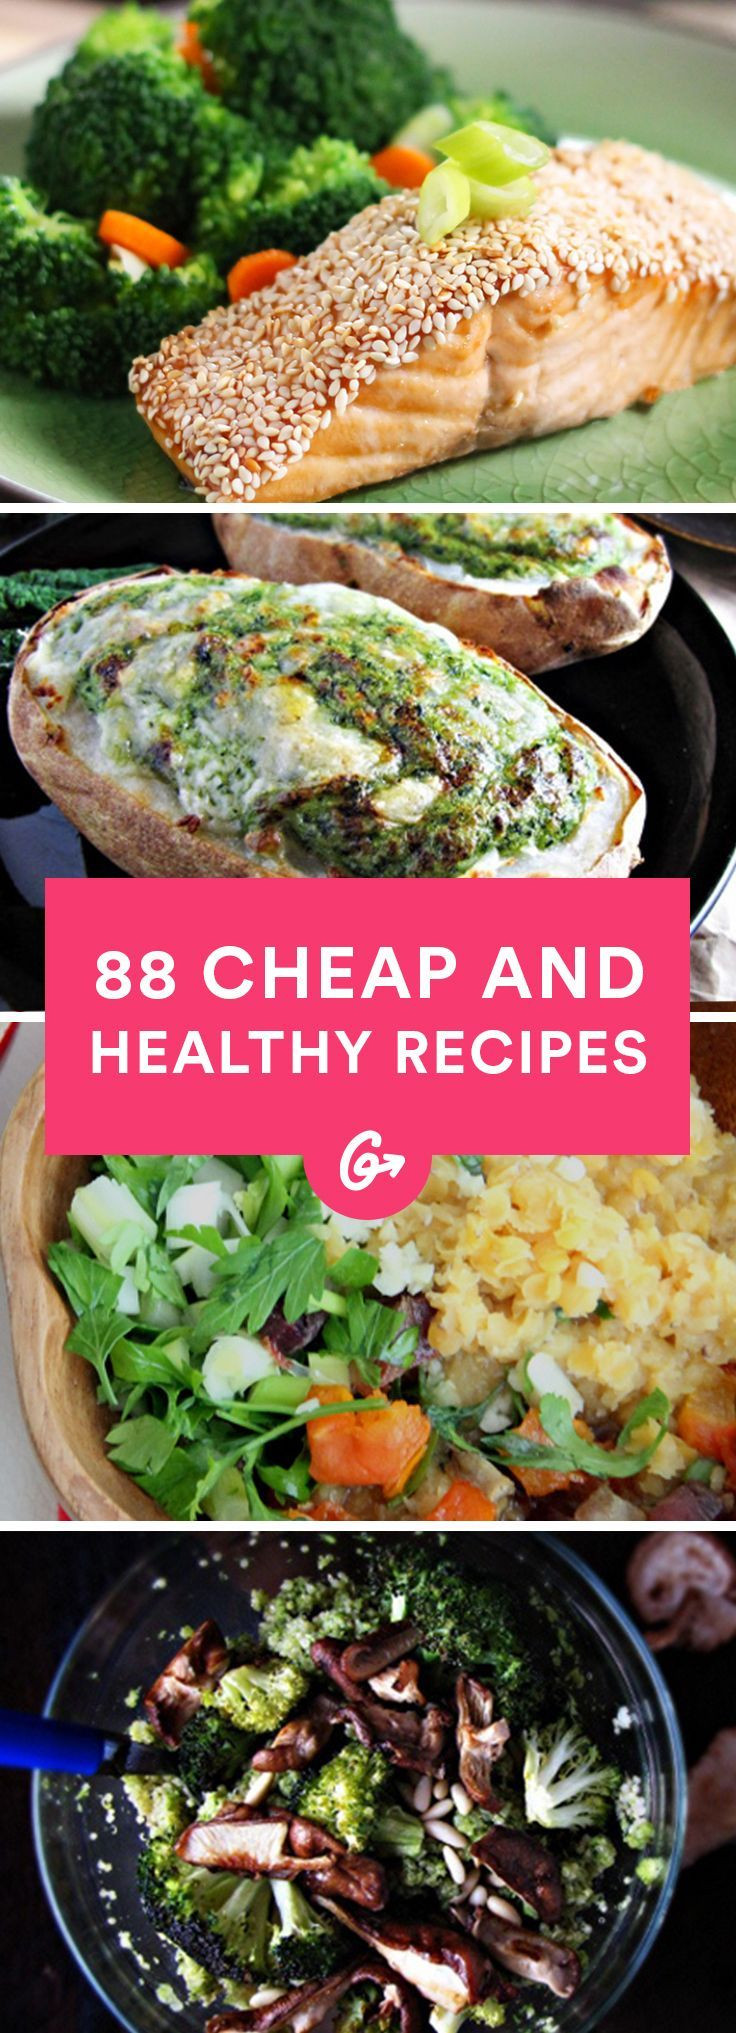 Cheap Healthy Lunches  88 Cheap and Healthy Lunch and Dinner Recipes